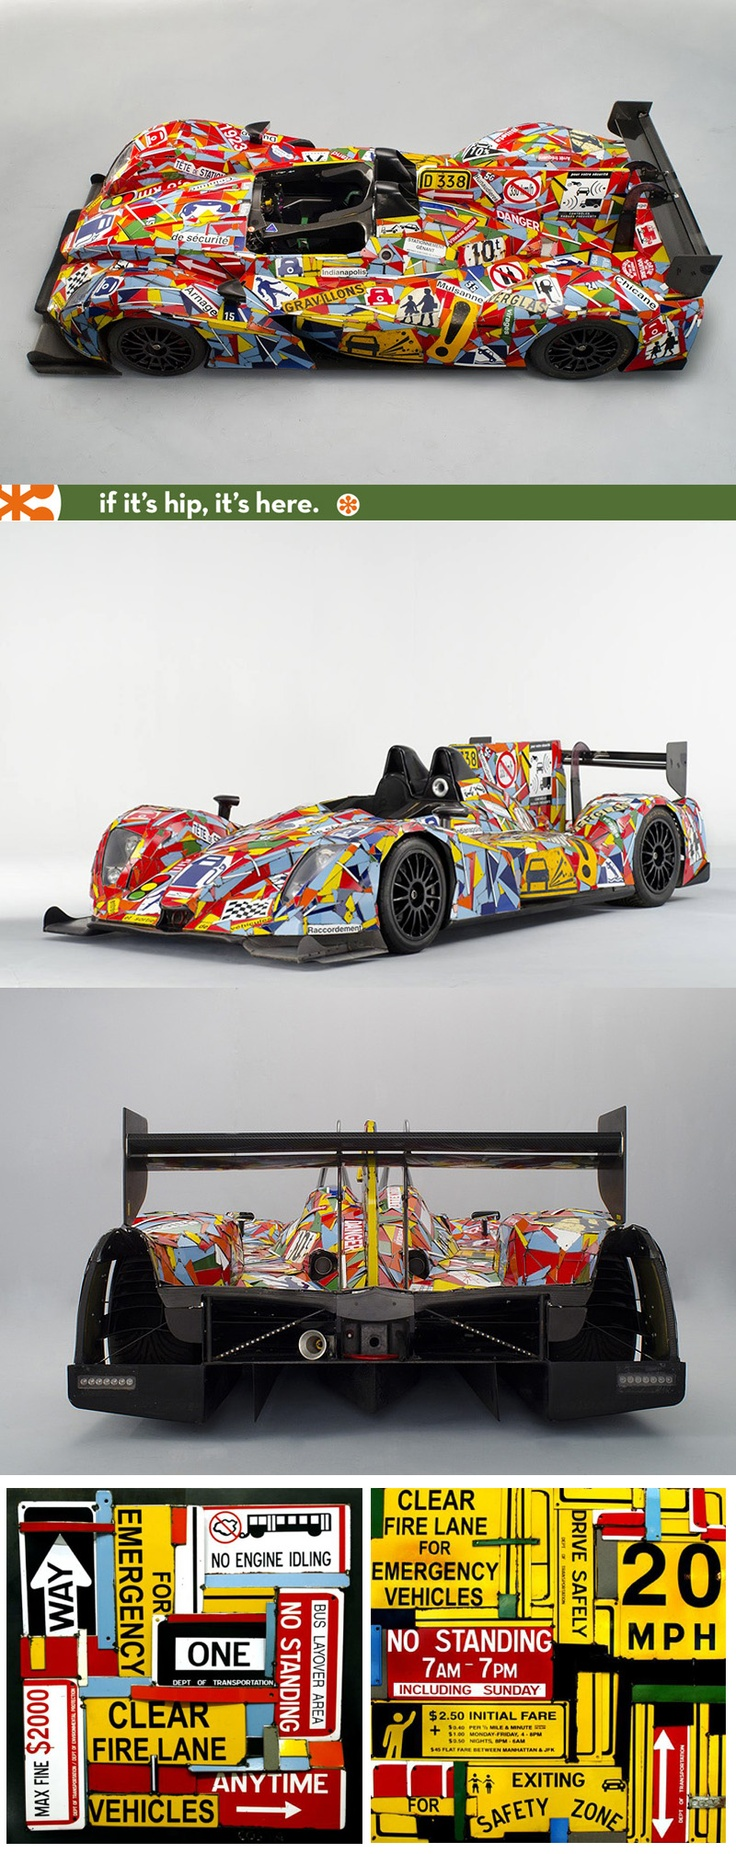 The Official Art Car for Le Mans 24 Hours by artist Fernando Costa (and a look at his other art)